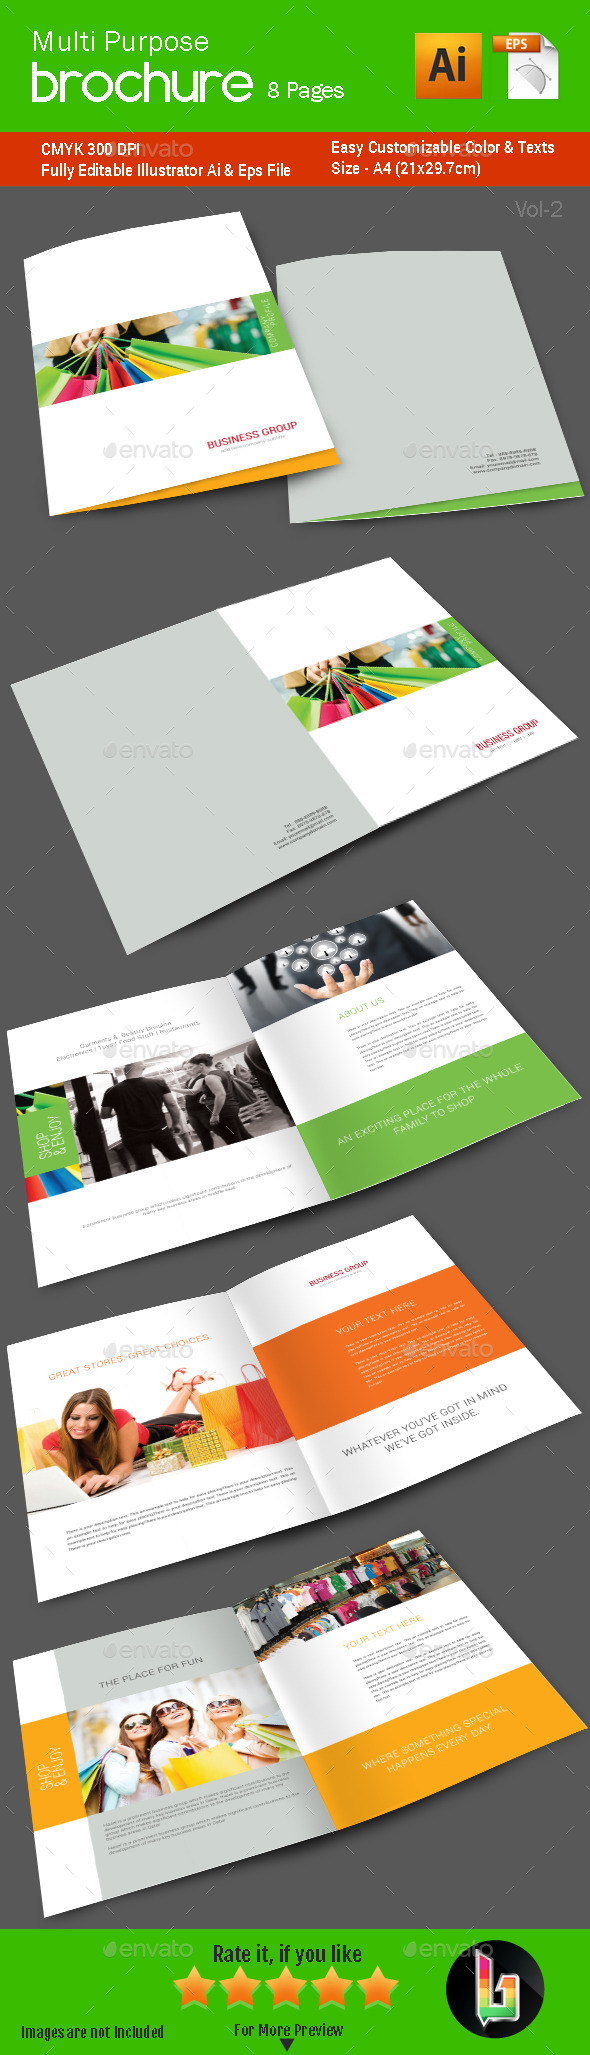 GraphicRiver Multi Purpose Brochure 8 Pages Vol2 8887757